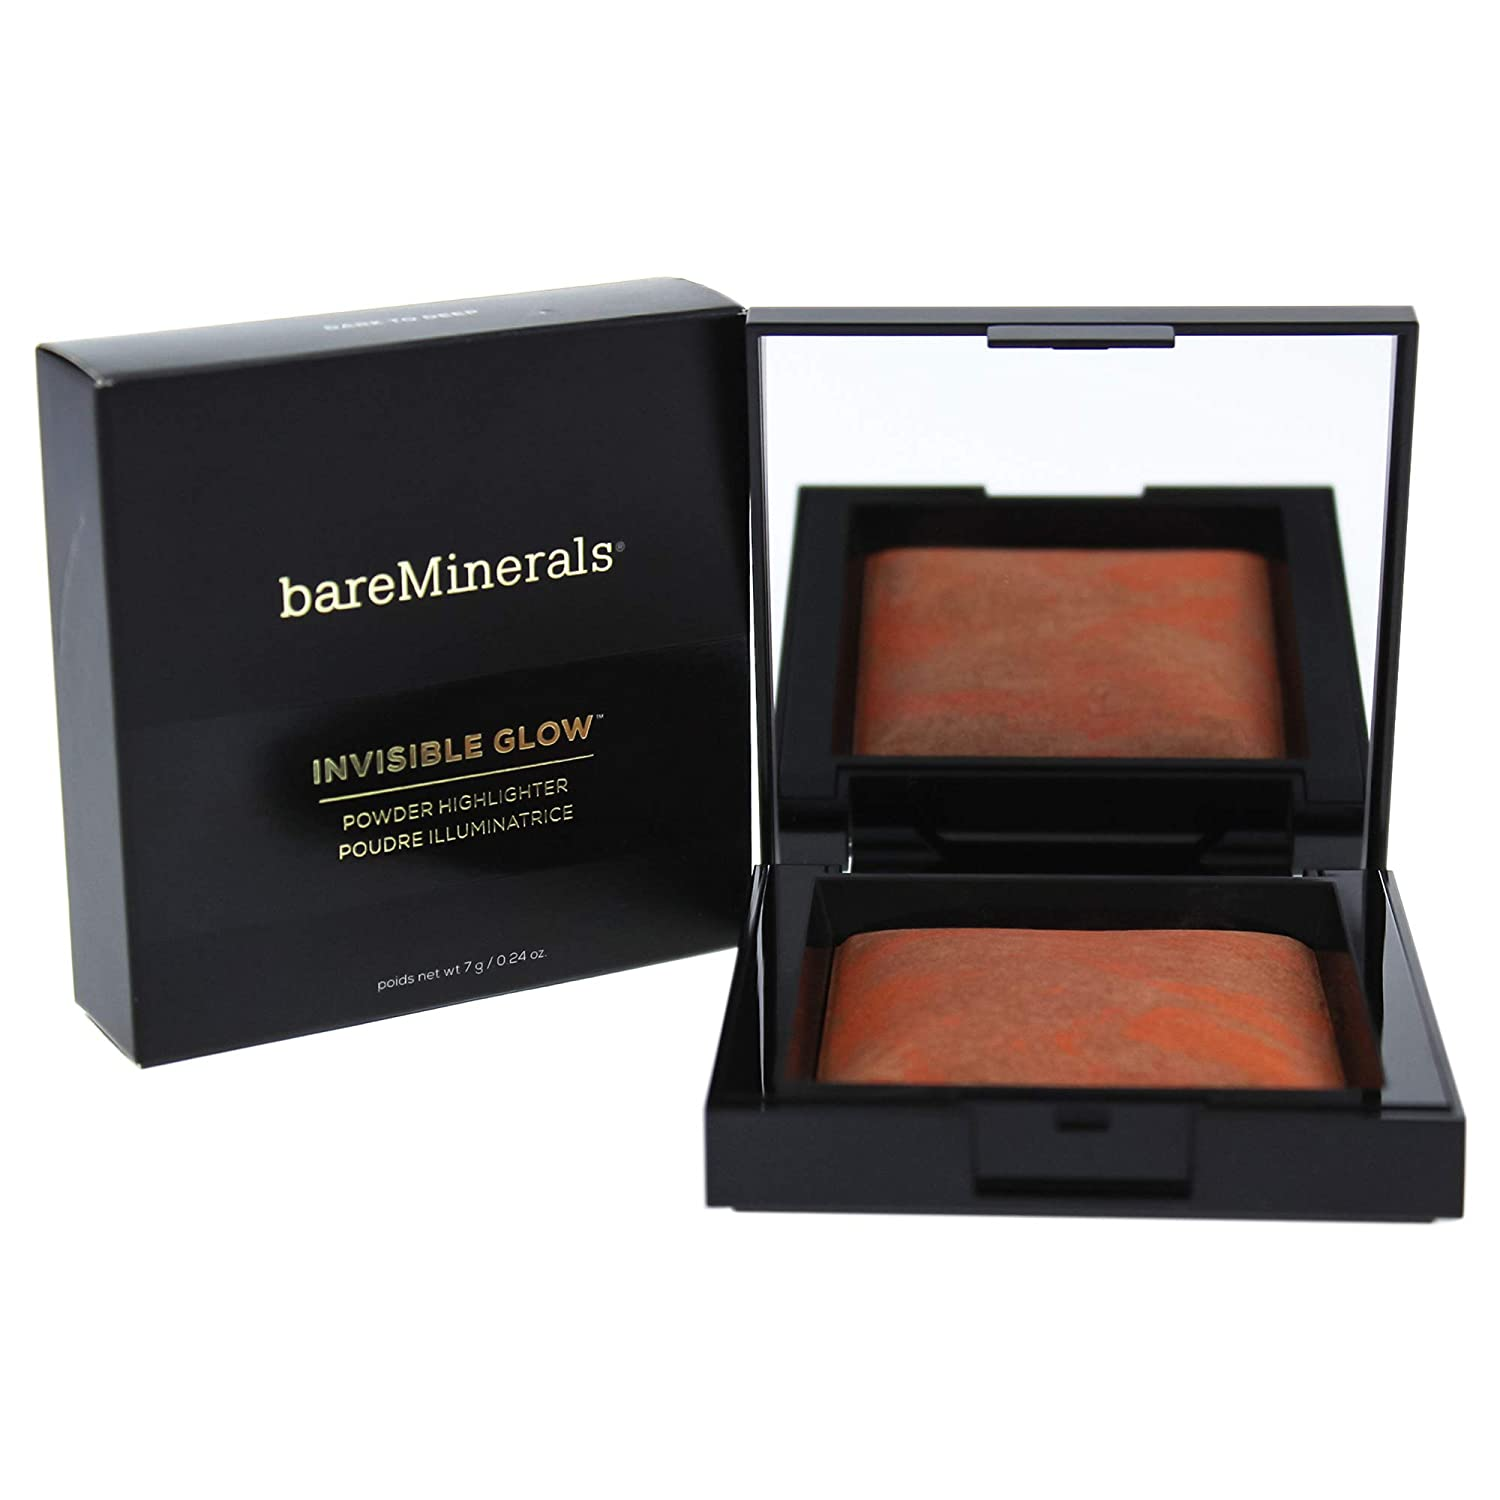 WHOLESALE BAREMINERALS INVISIBLE GLOW POWDER HIGHLIGHTER 0.24 OZ - DARK TO DEEP - 45 PIECE LOT